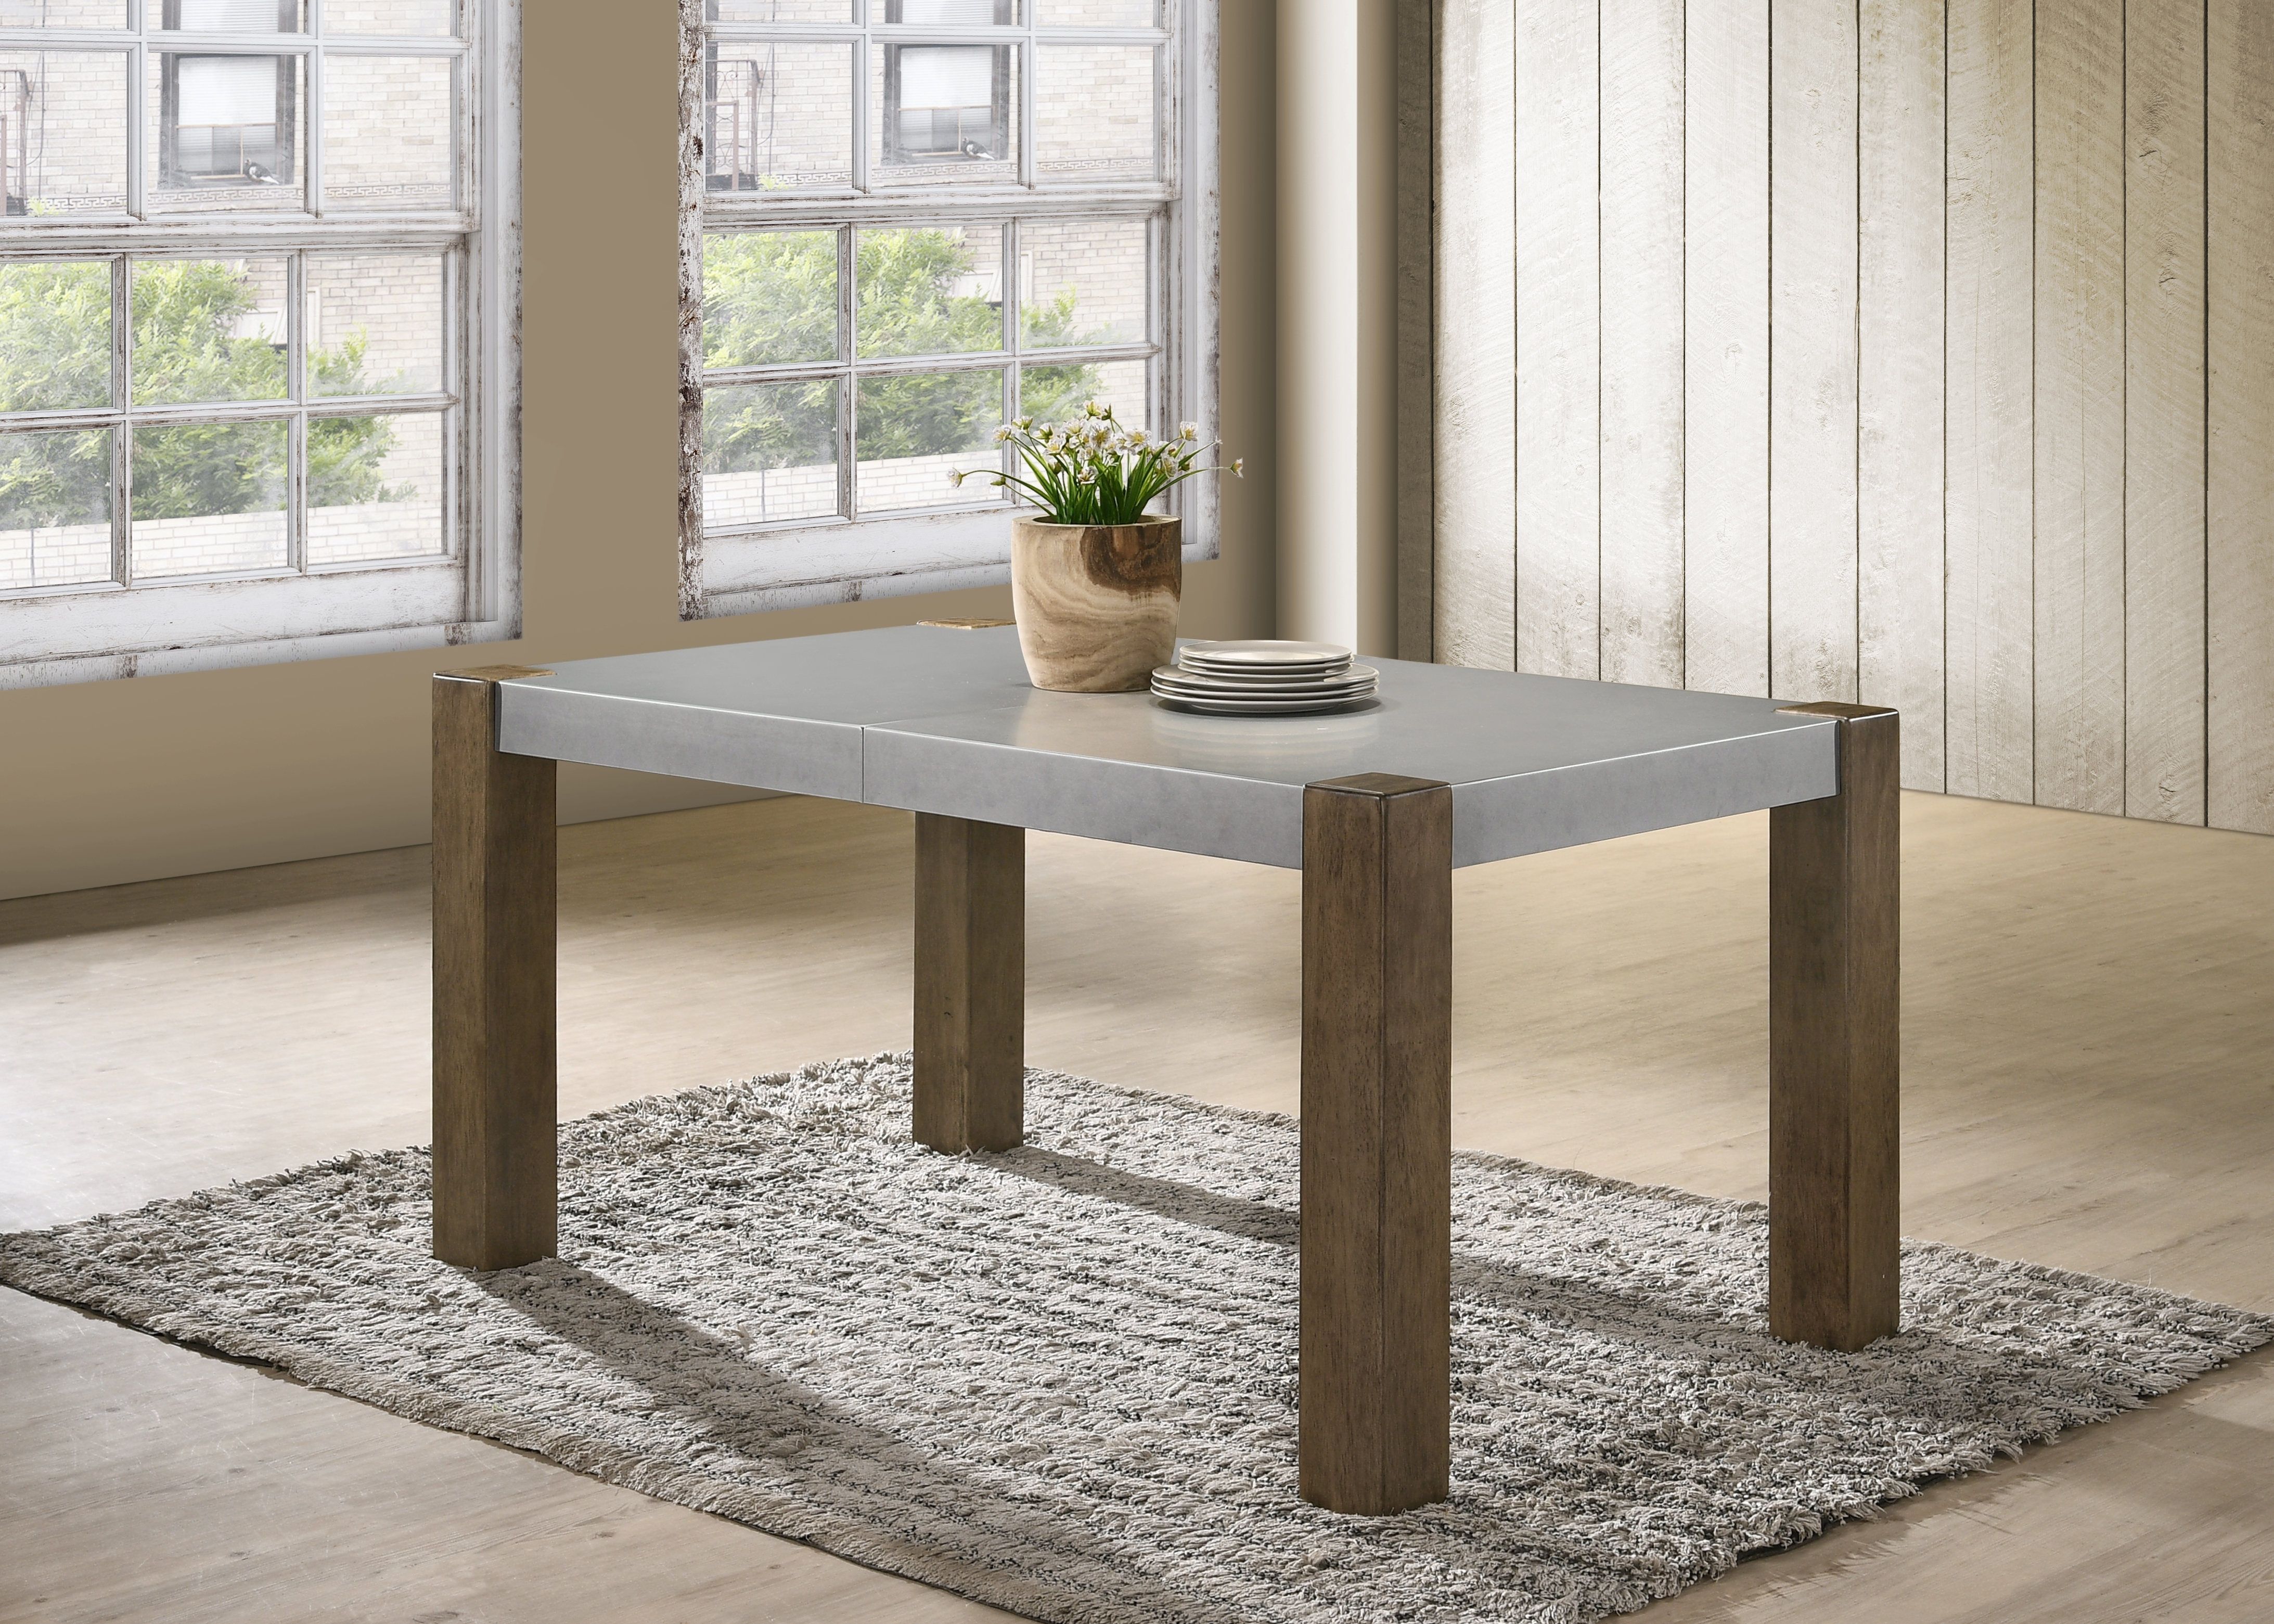 Gracie Oaks Colmont Butterfly Leaf Dining Table | Wayfair In Most Recent Teagan Extension Dining Tables (Photo 9 of 20)